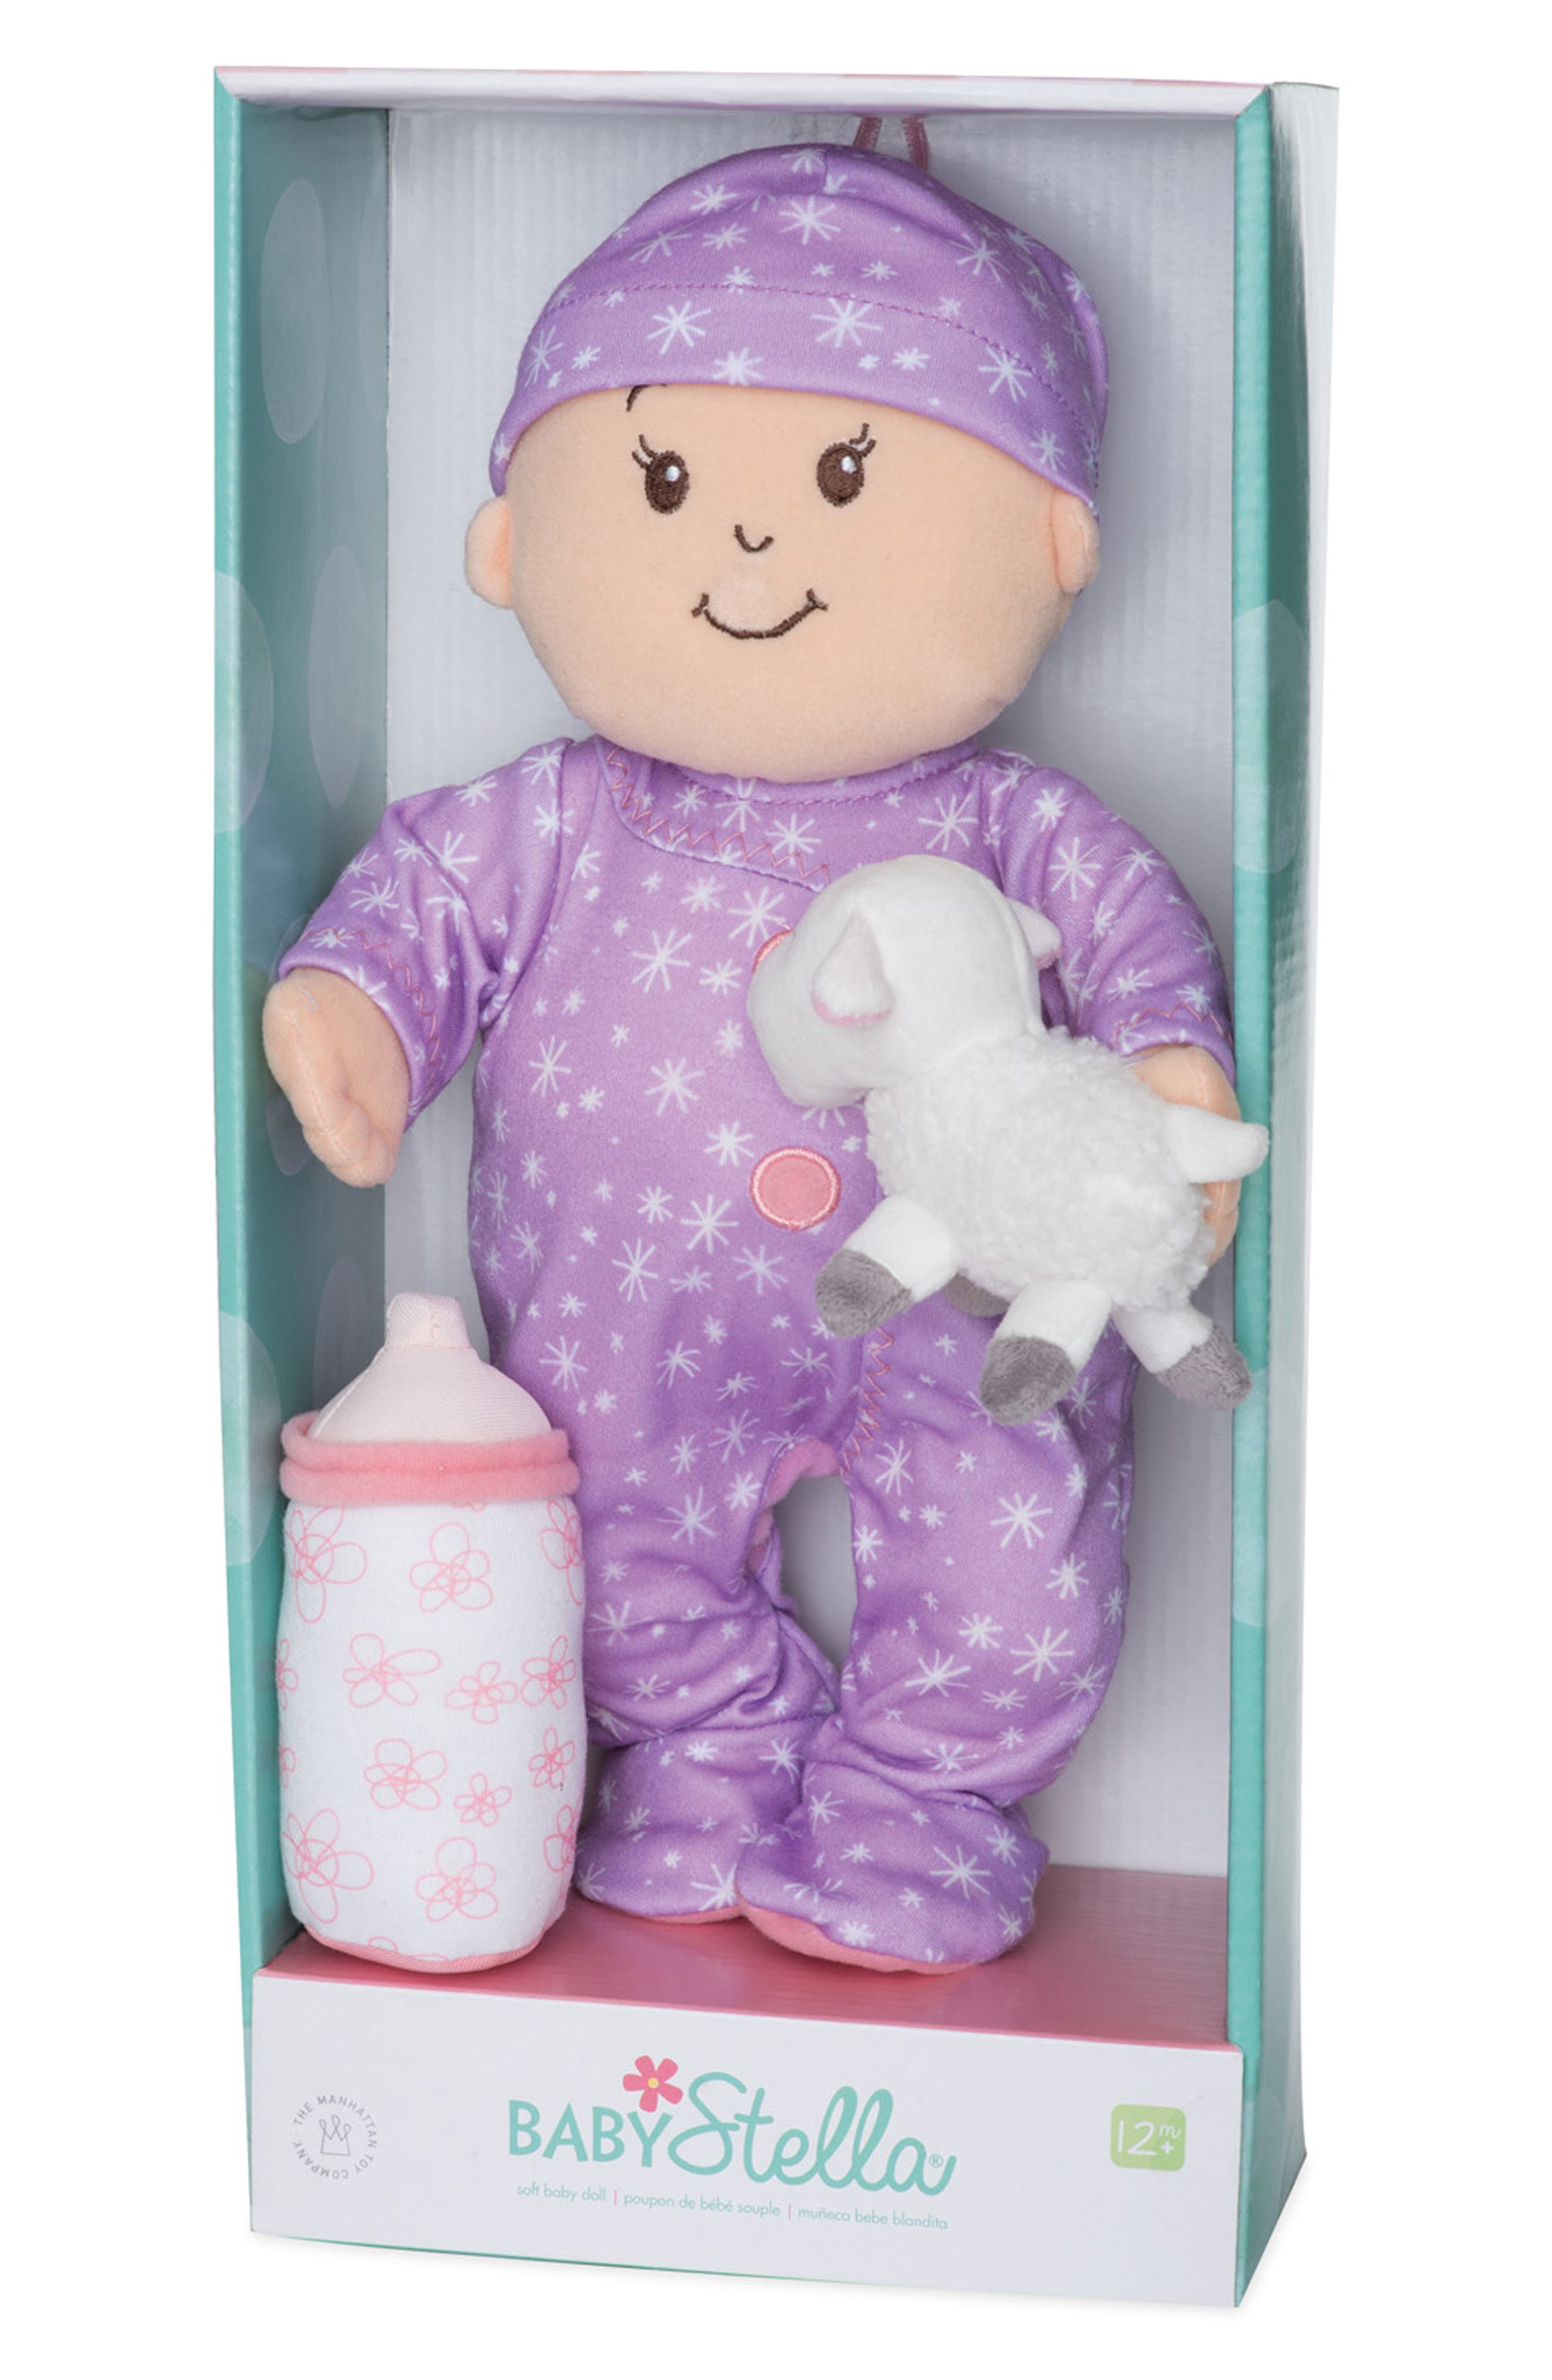 Baby Stella - Sweet Dreams Doll Toy,                             Alternate thumbnail 2, color,                             500